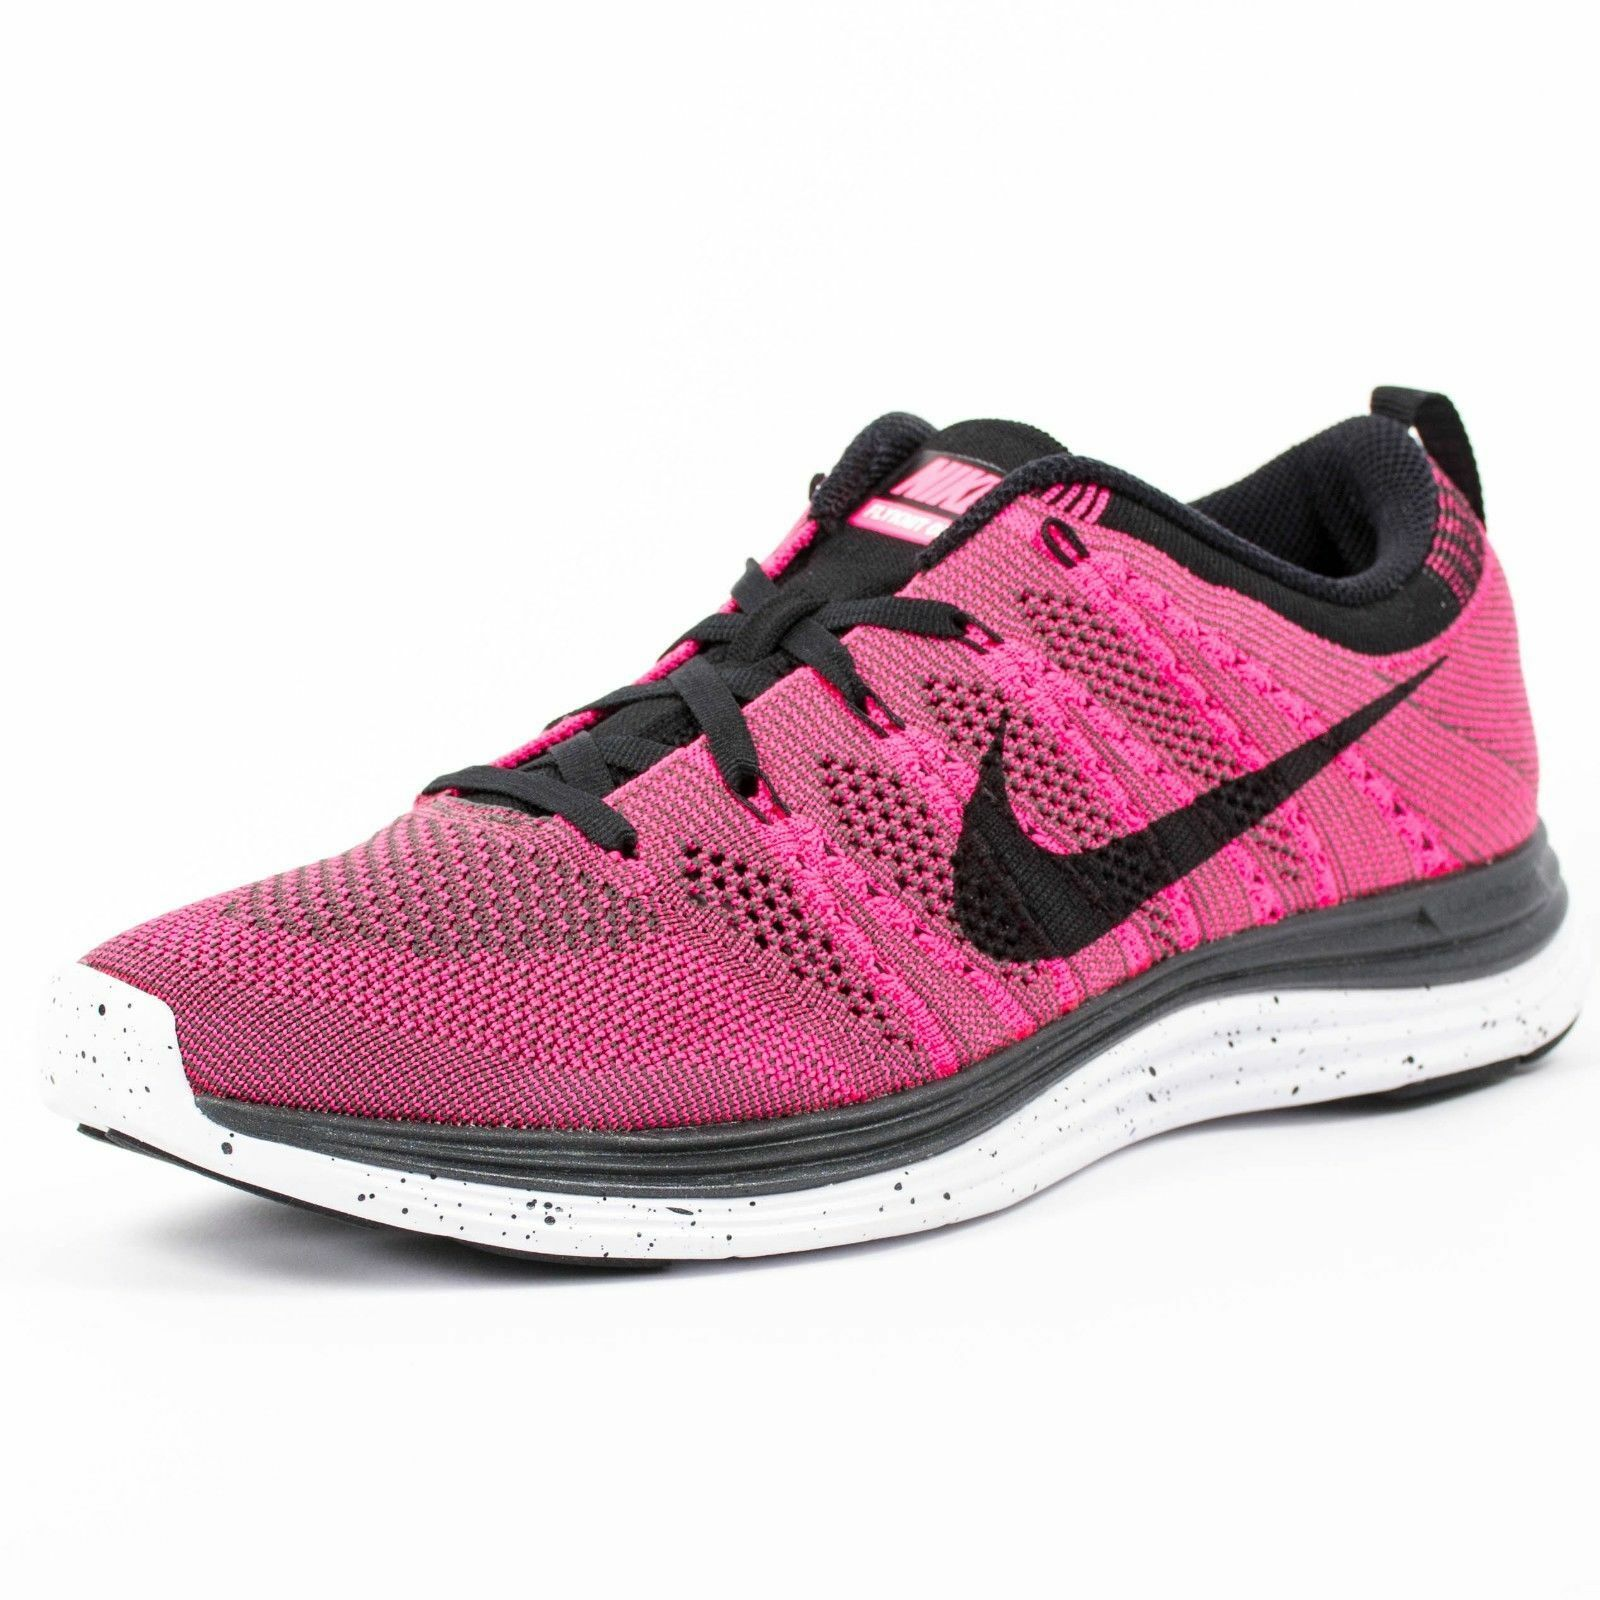 separation shoes 36152 fd970 ... new zealand nike flyknit one pink flash black midnight fog 554887 600  84a89 d1811